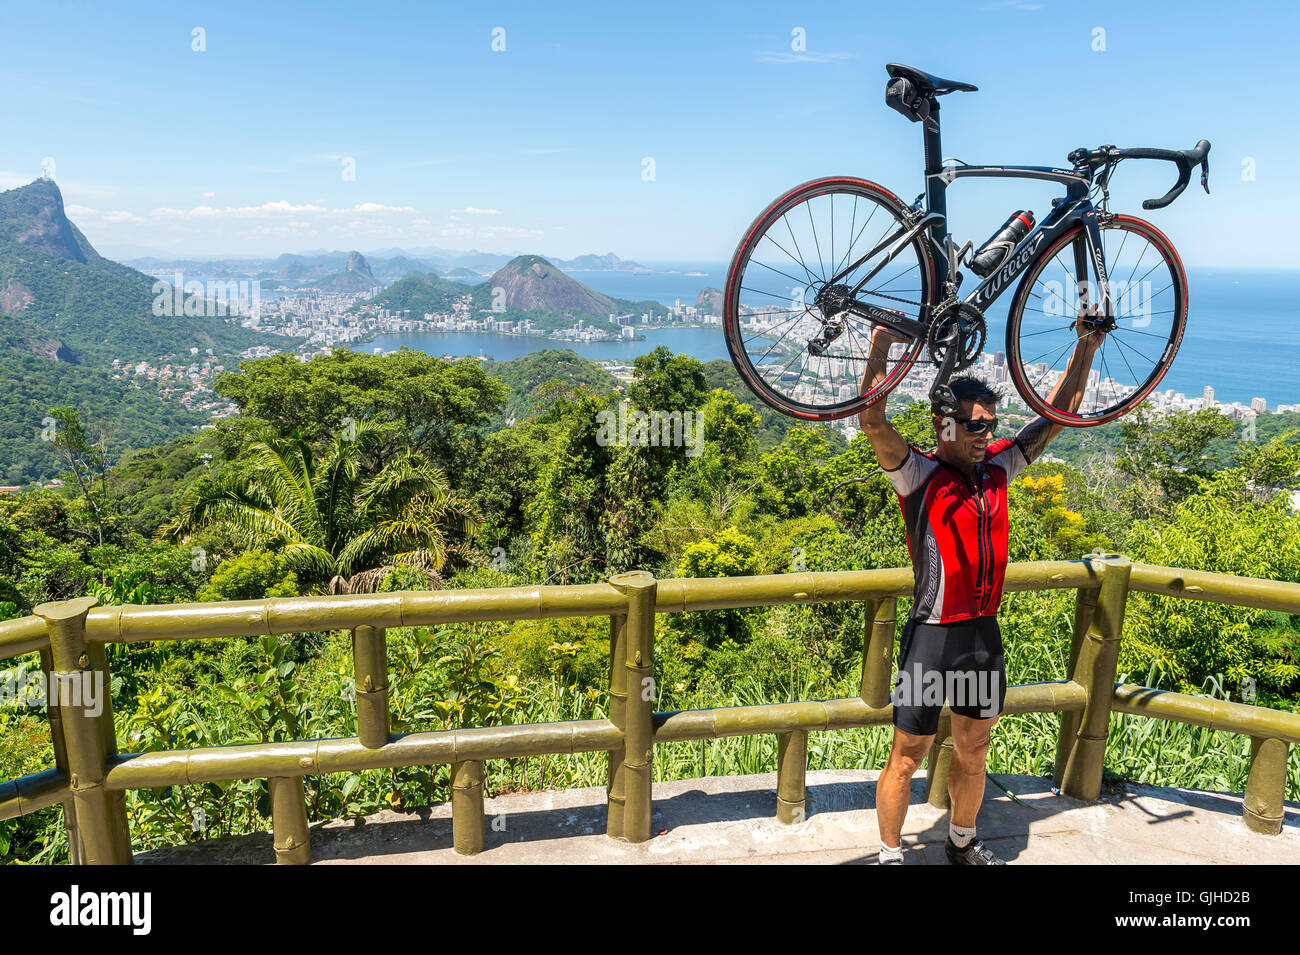 RIO DE JANEIRO - FEBRUARY 24, 2015: Cyclist poses with his bicycle aloft after making the steep ascent to the Vista Stock Photo